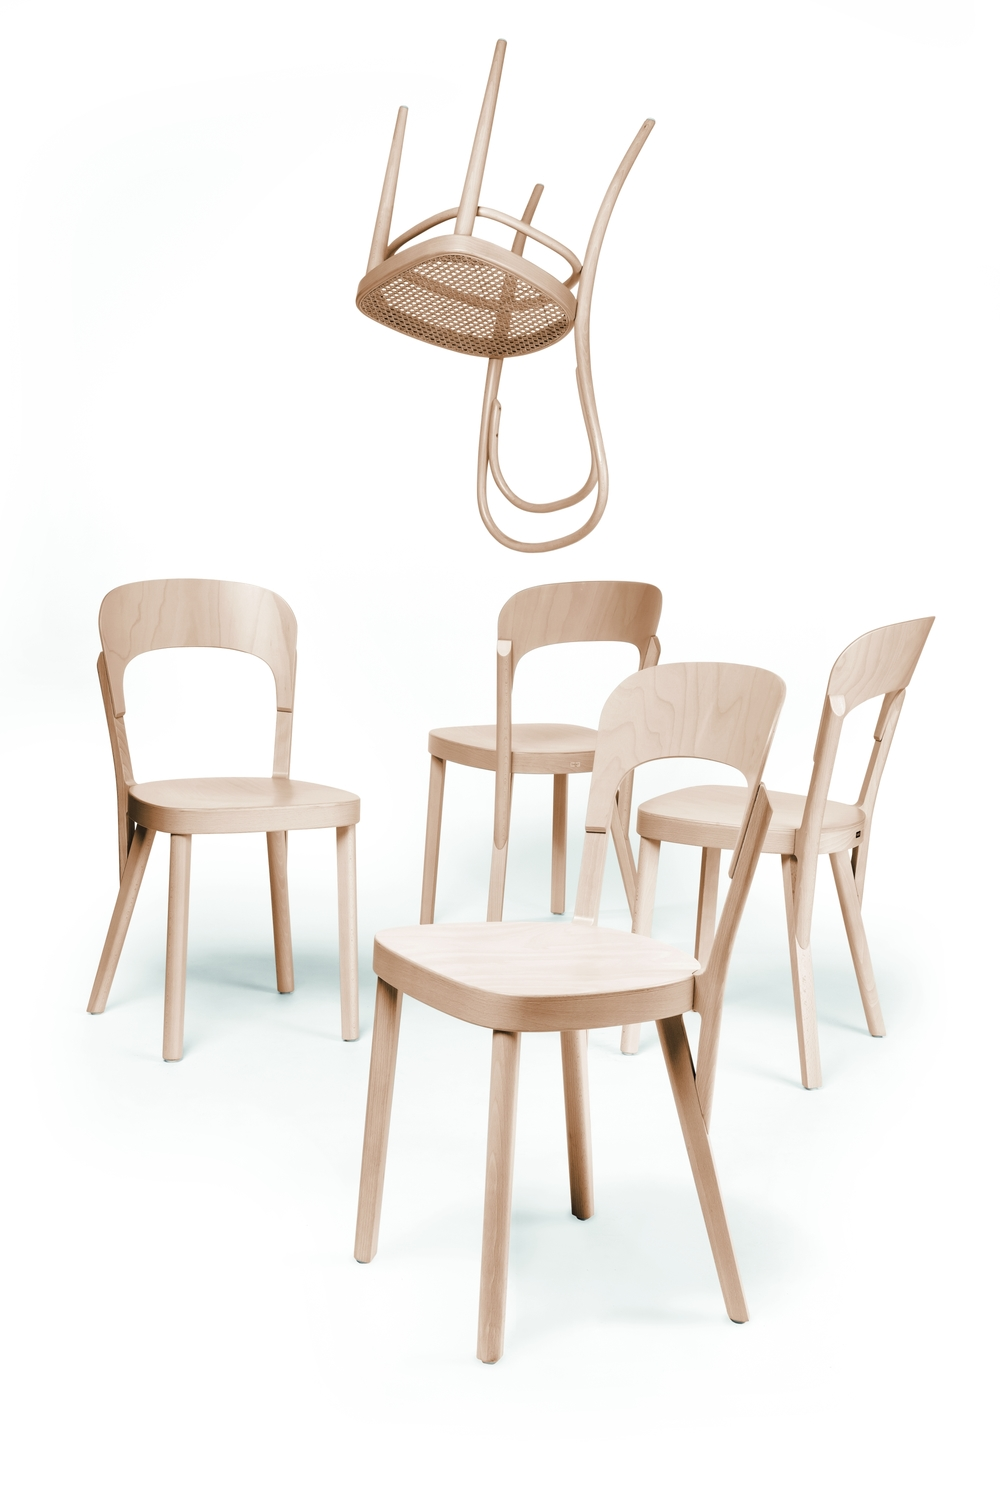 107 Chair by Thonet